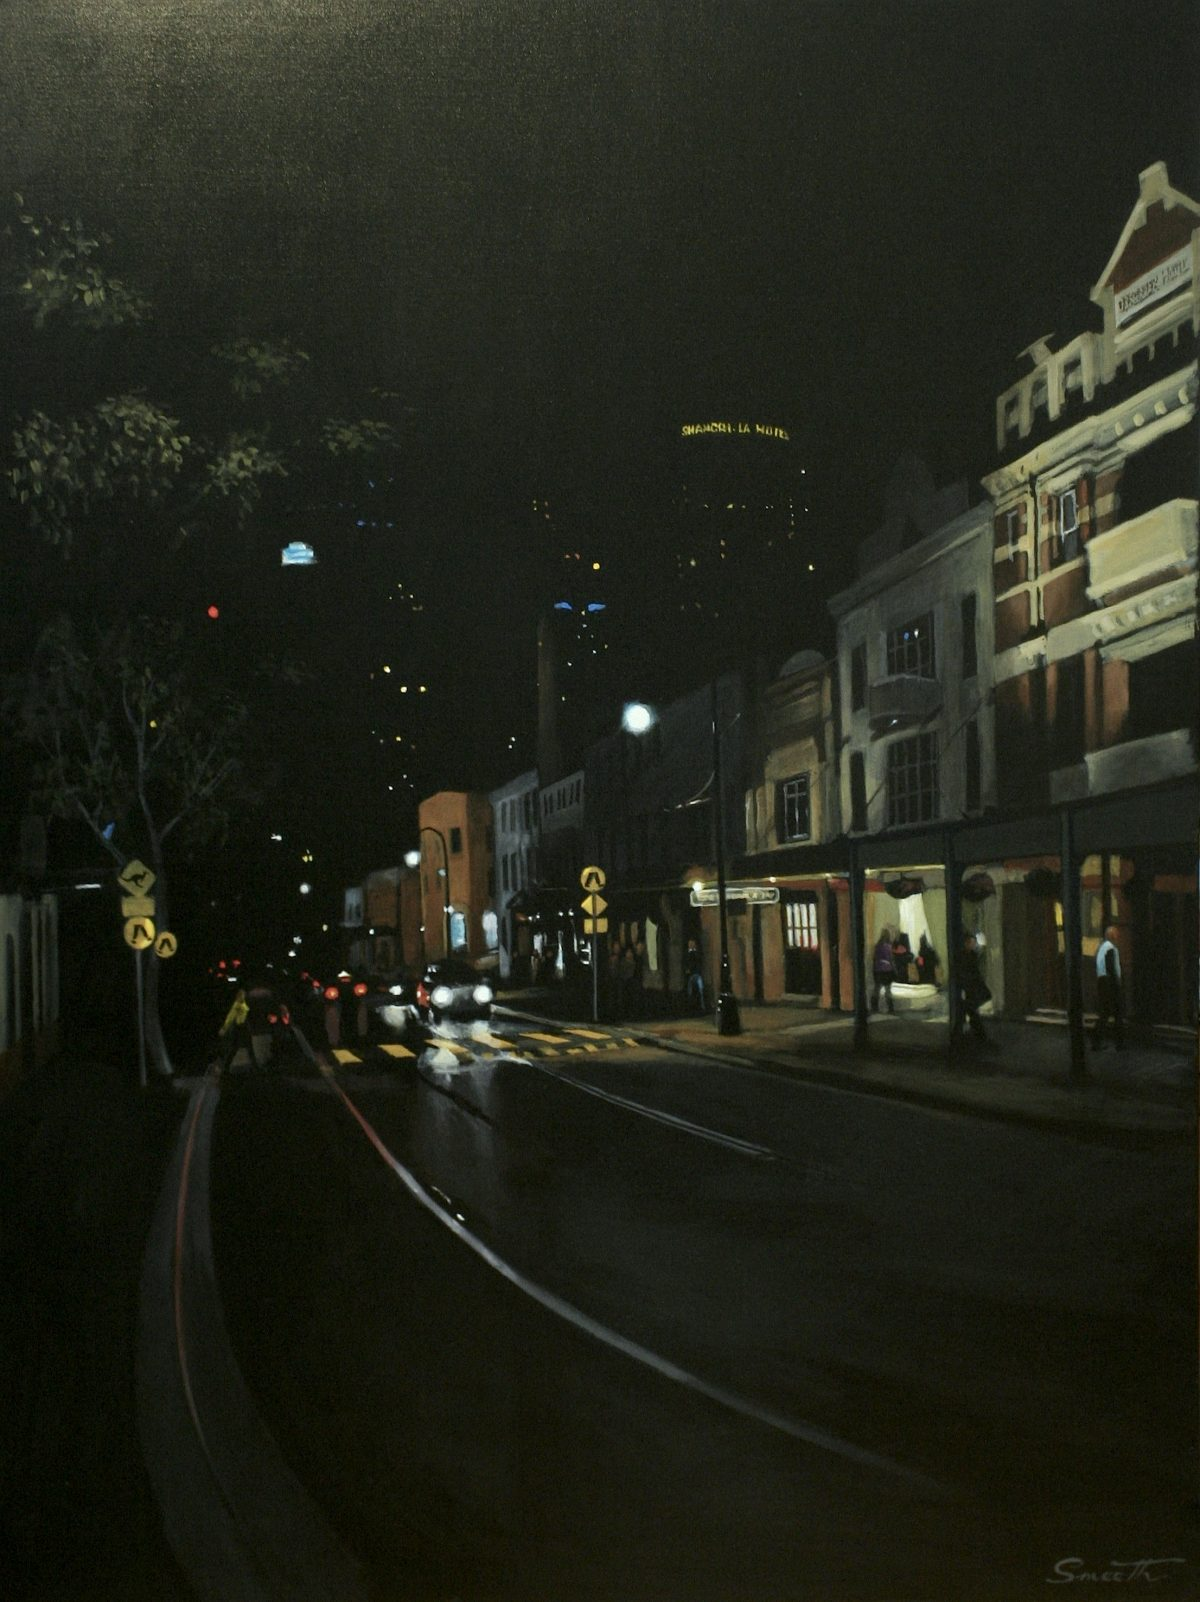 6Night Lights Symphony - The Rocks, Sydney Australia 2005. Acrylic on canvas 120x90cm $8,000